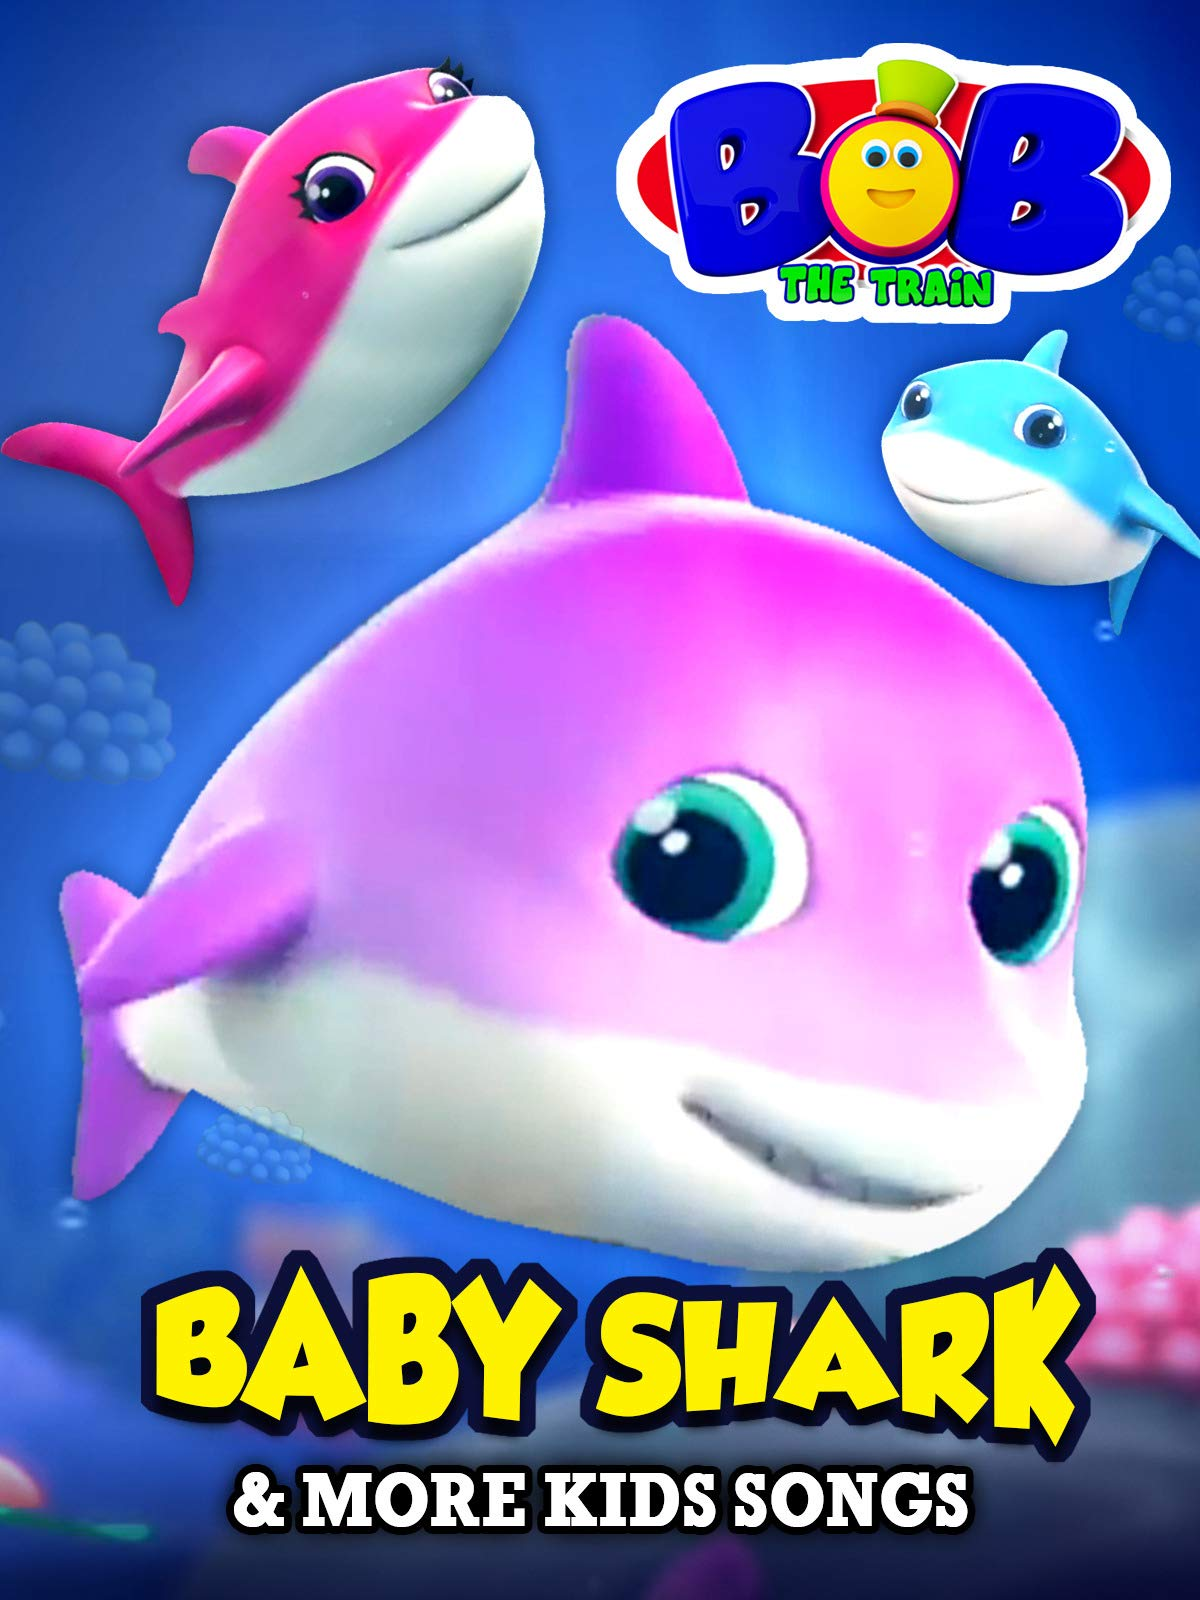 Baby Shark & More Kids Songs by Bob The Train